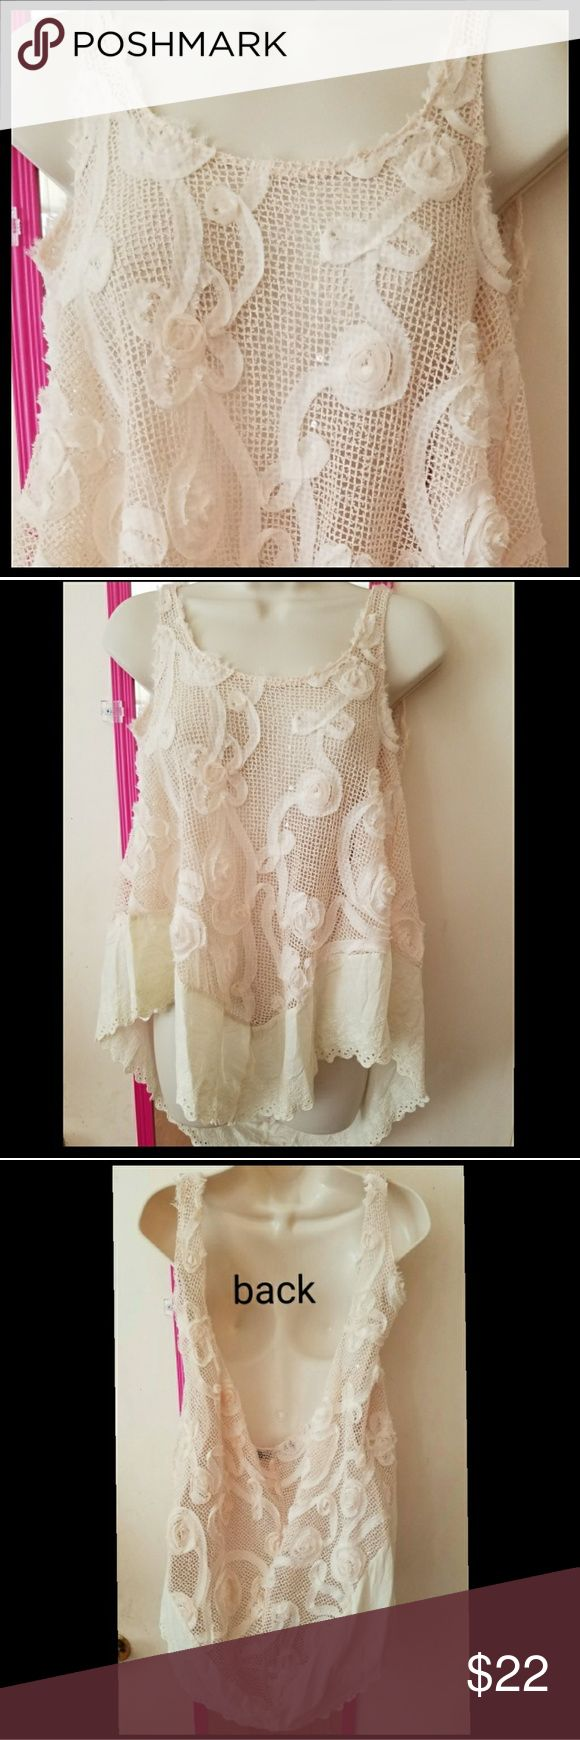 NEW LISTING Origami Unusual Lace Mesh Floral Tank Very different cream colored boutique brand Origami by Vivien mesh tank with floral rosettes made of frayed ribbon. V shape bottom hem trimmed in eyelet lace for a vintage look. The back of the top is cowl like with a deep drop. Tank also has a few sequins sprinkled throughout. Polyester cotton blend. Oversized and stretchy. Size small. origami by vivien Tops Tank Tops